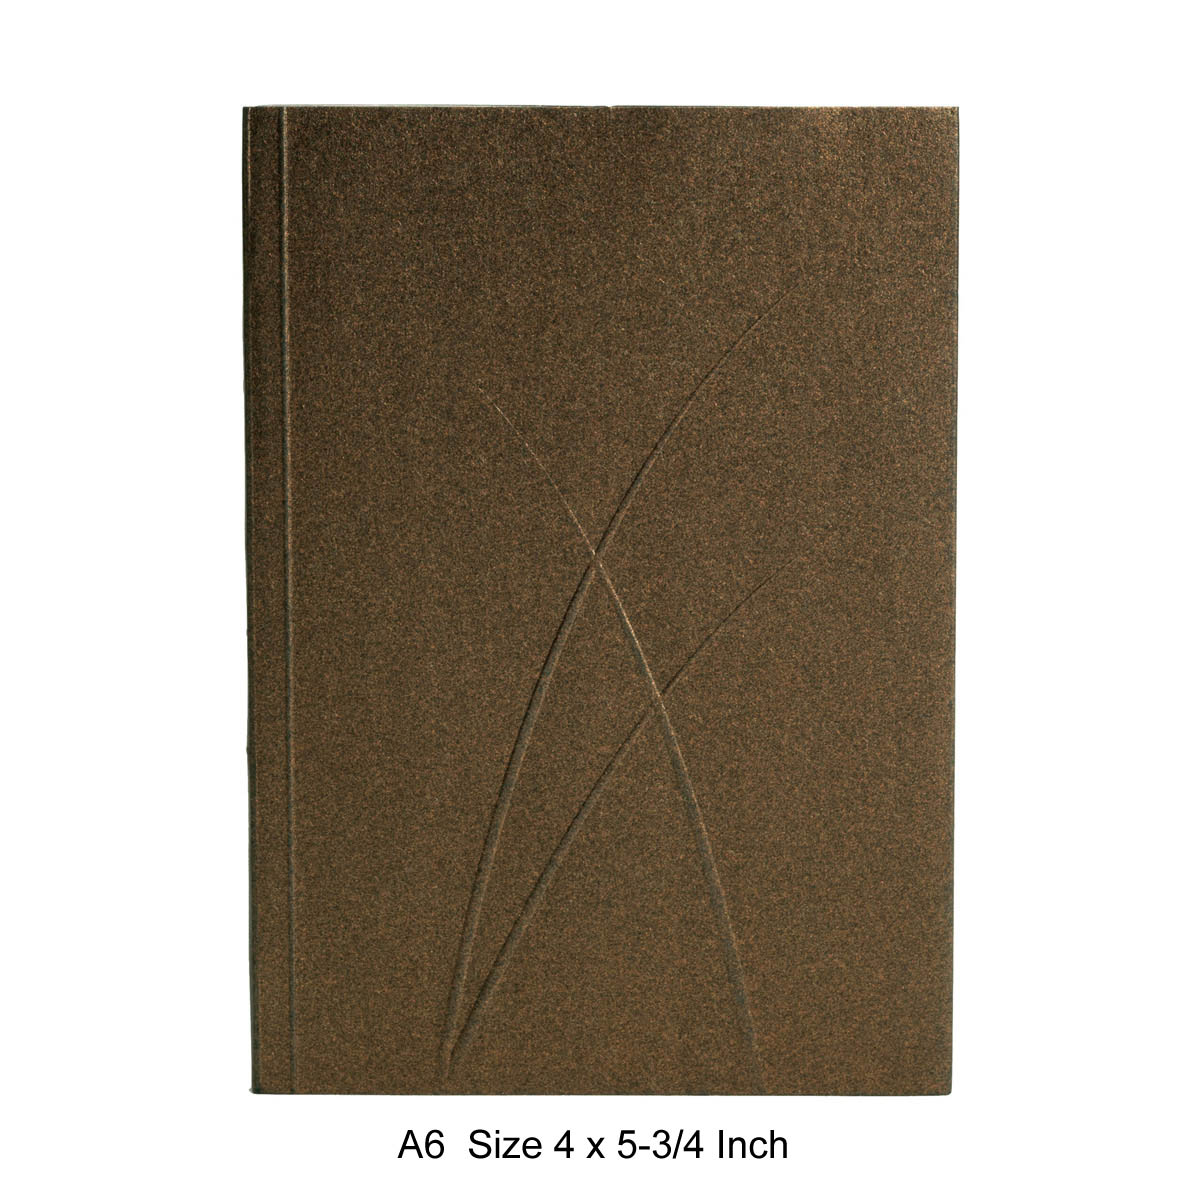 Paper-Oh Puro Notebook A6 Size